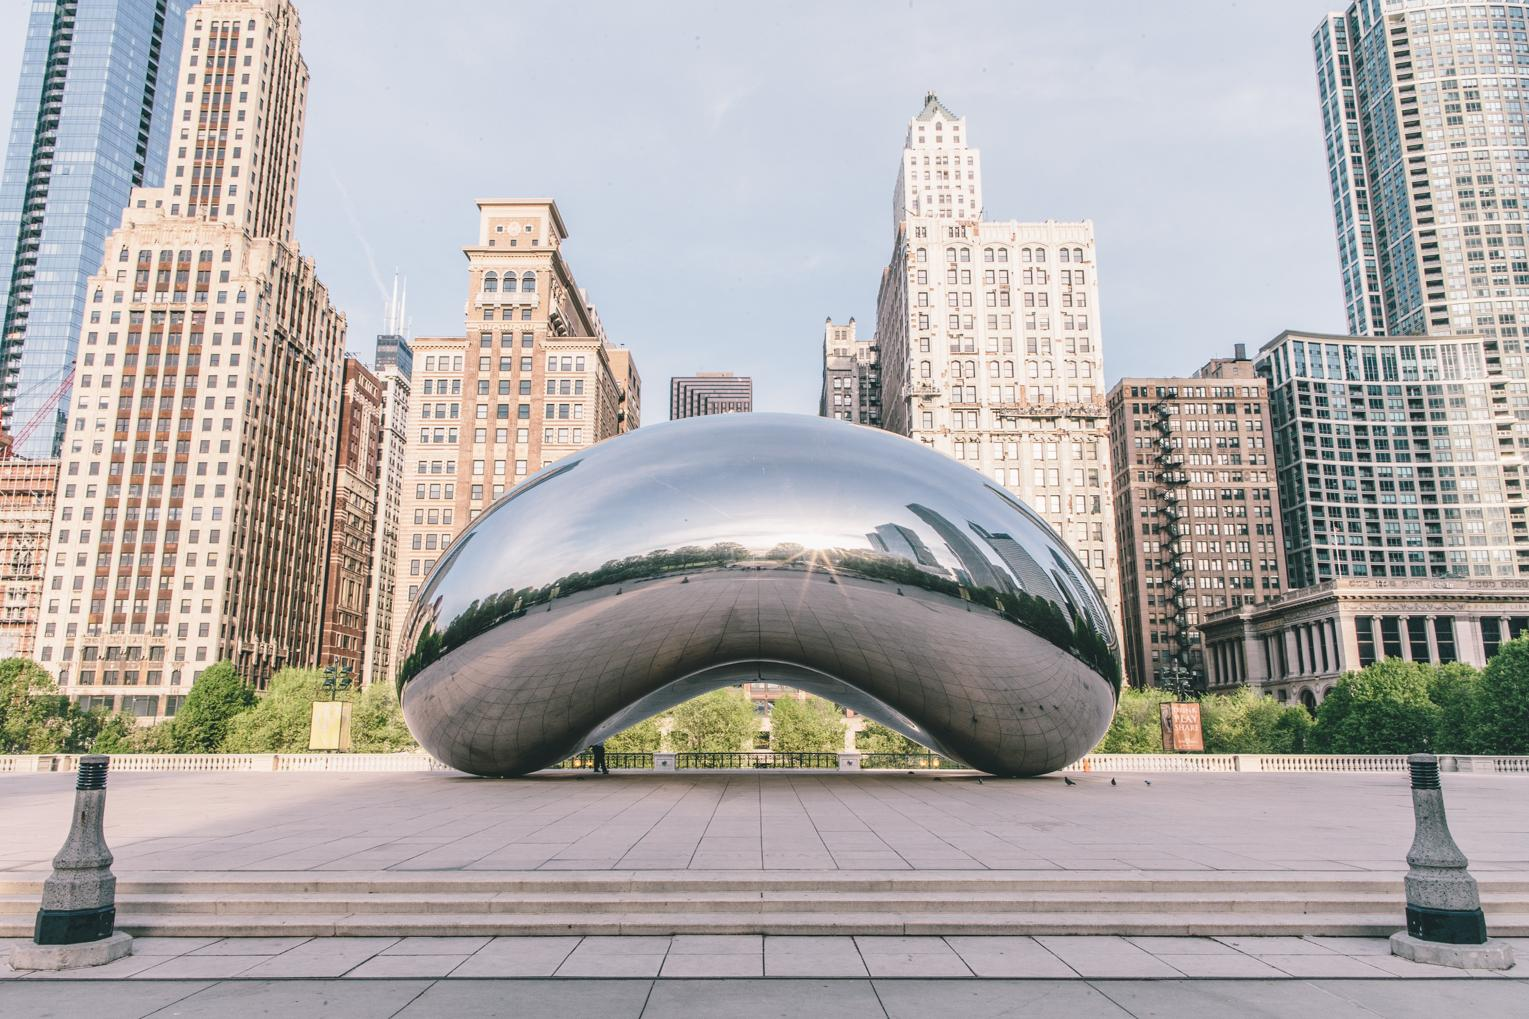 Welcome to Chicago. Sincerely, trashhand - image 4 - student project